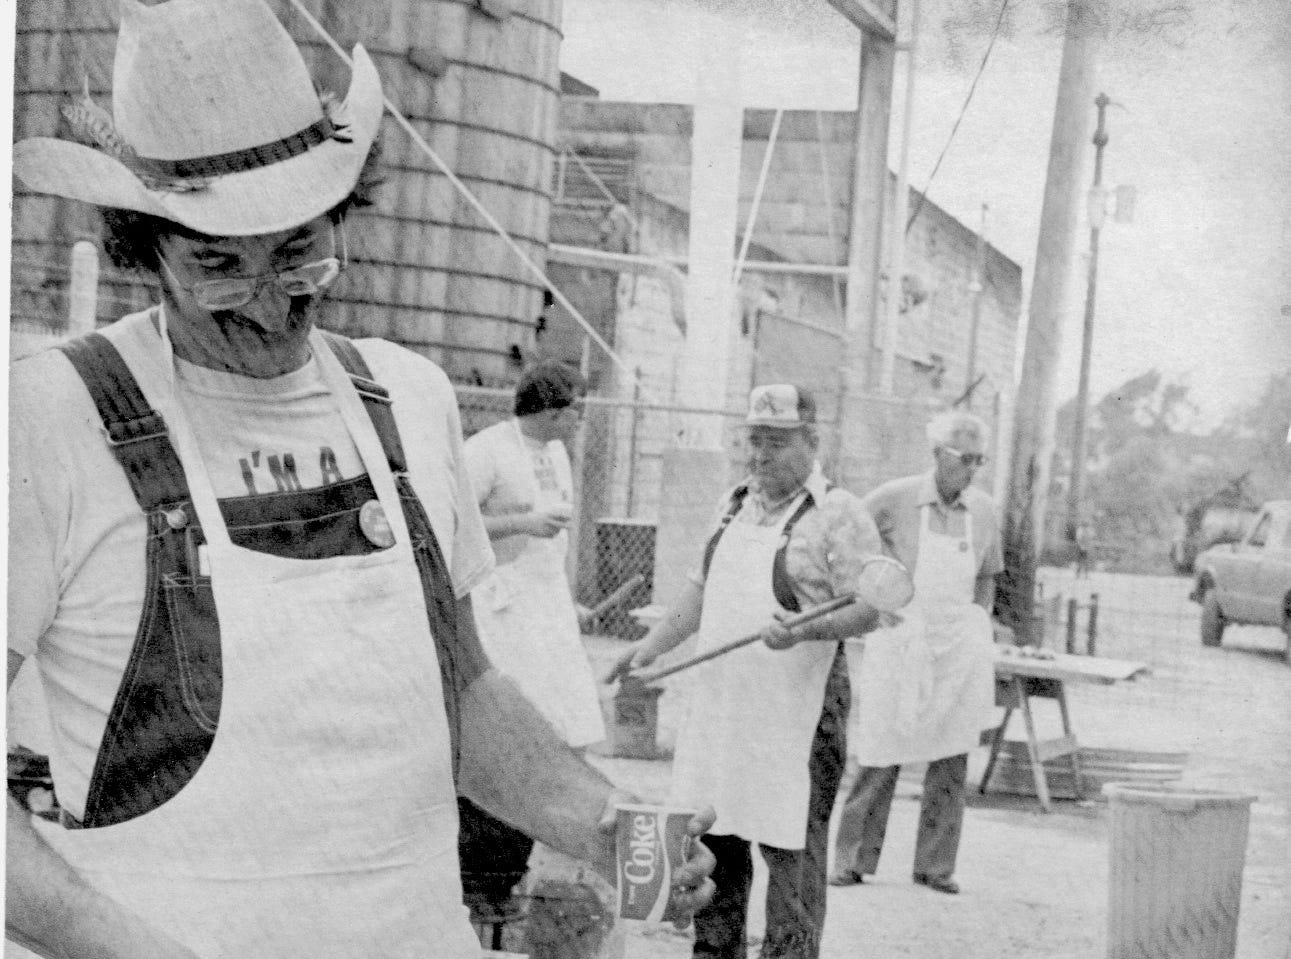 A vintage Sucker Days photo from the city of Nixa's collection.